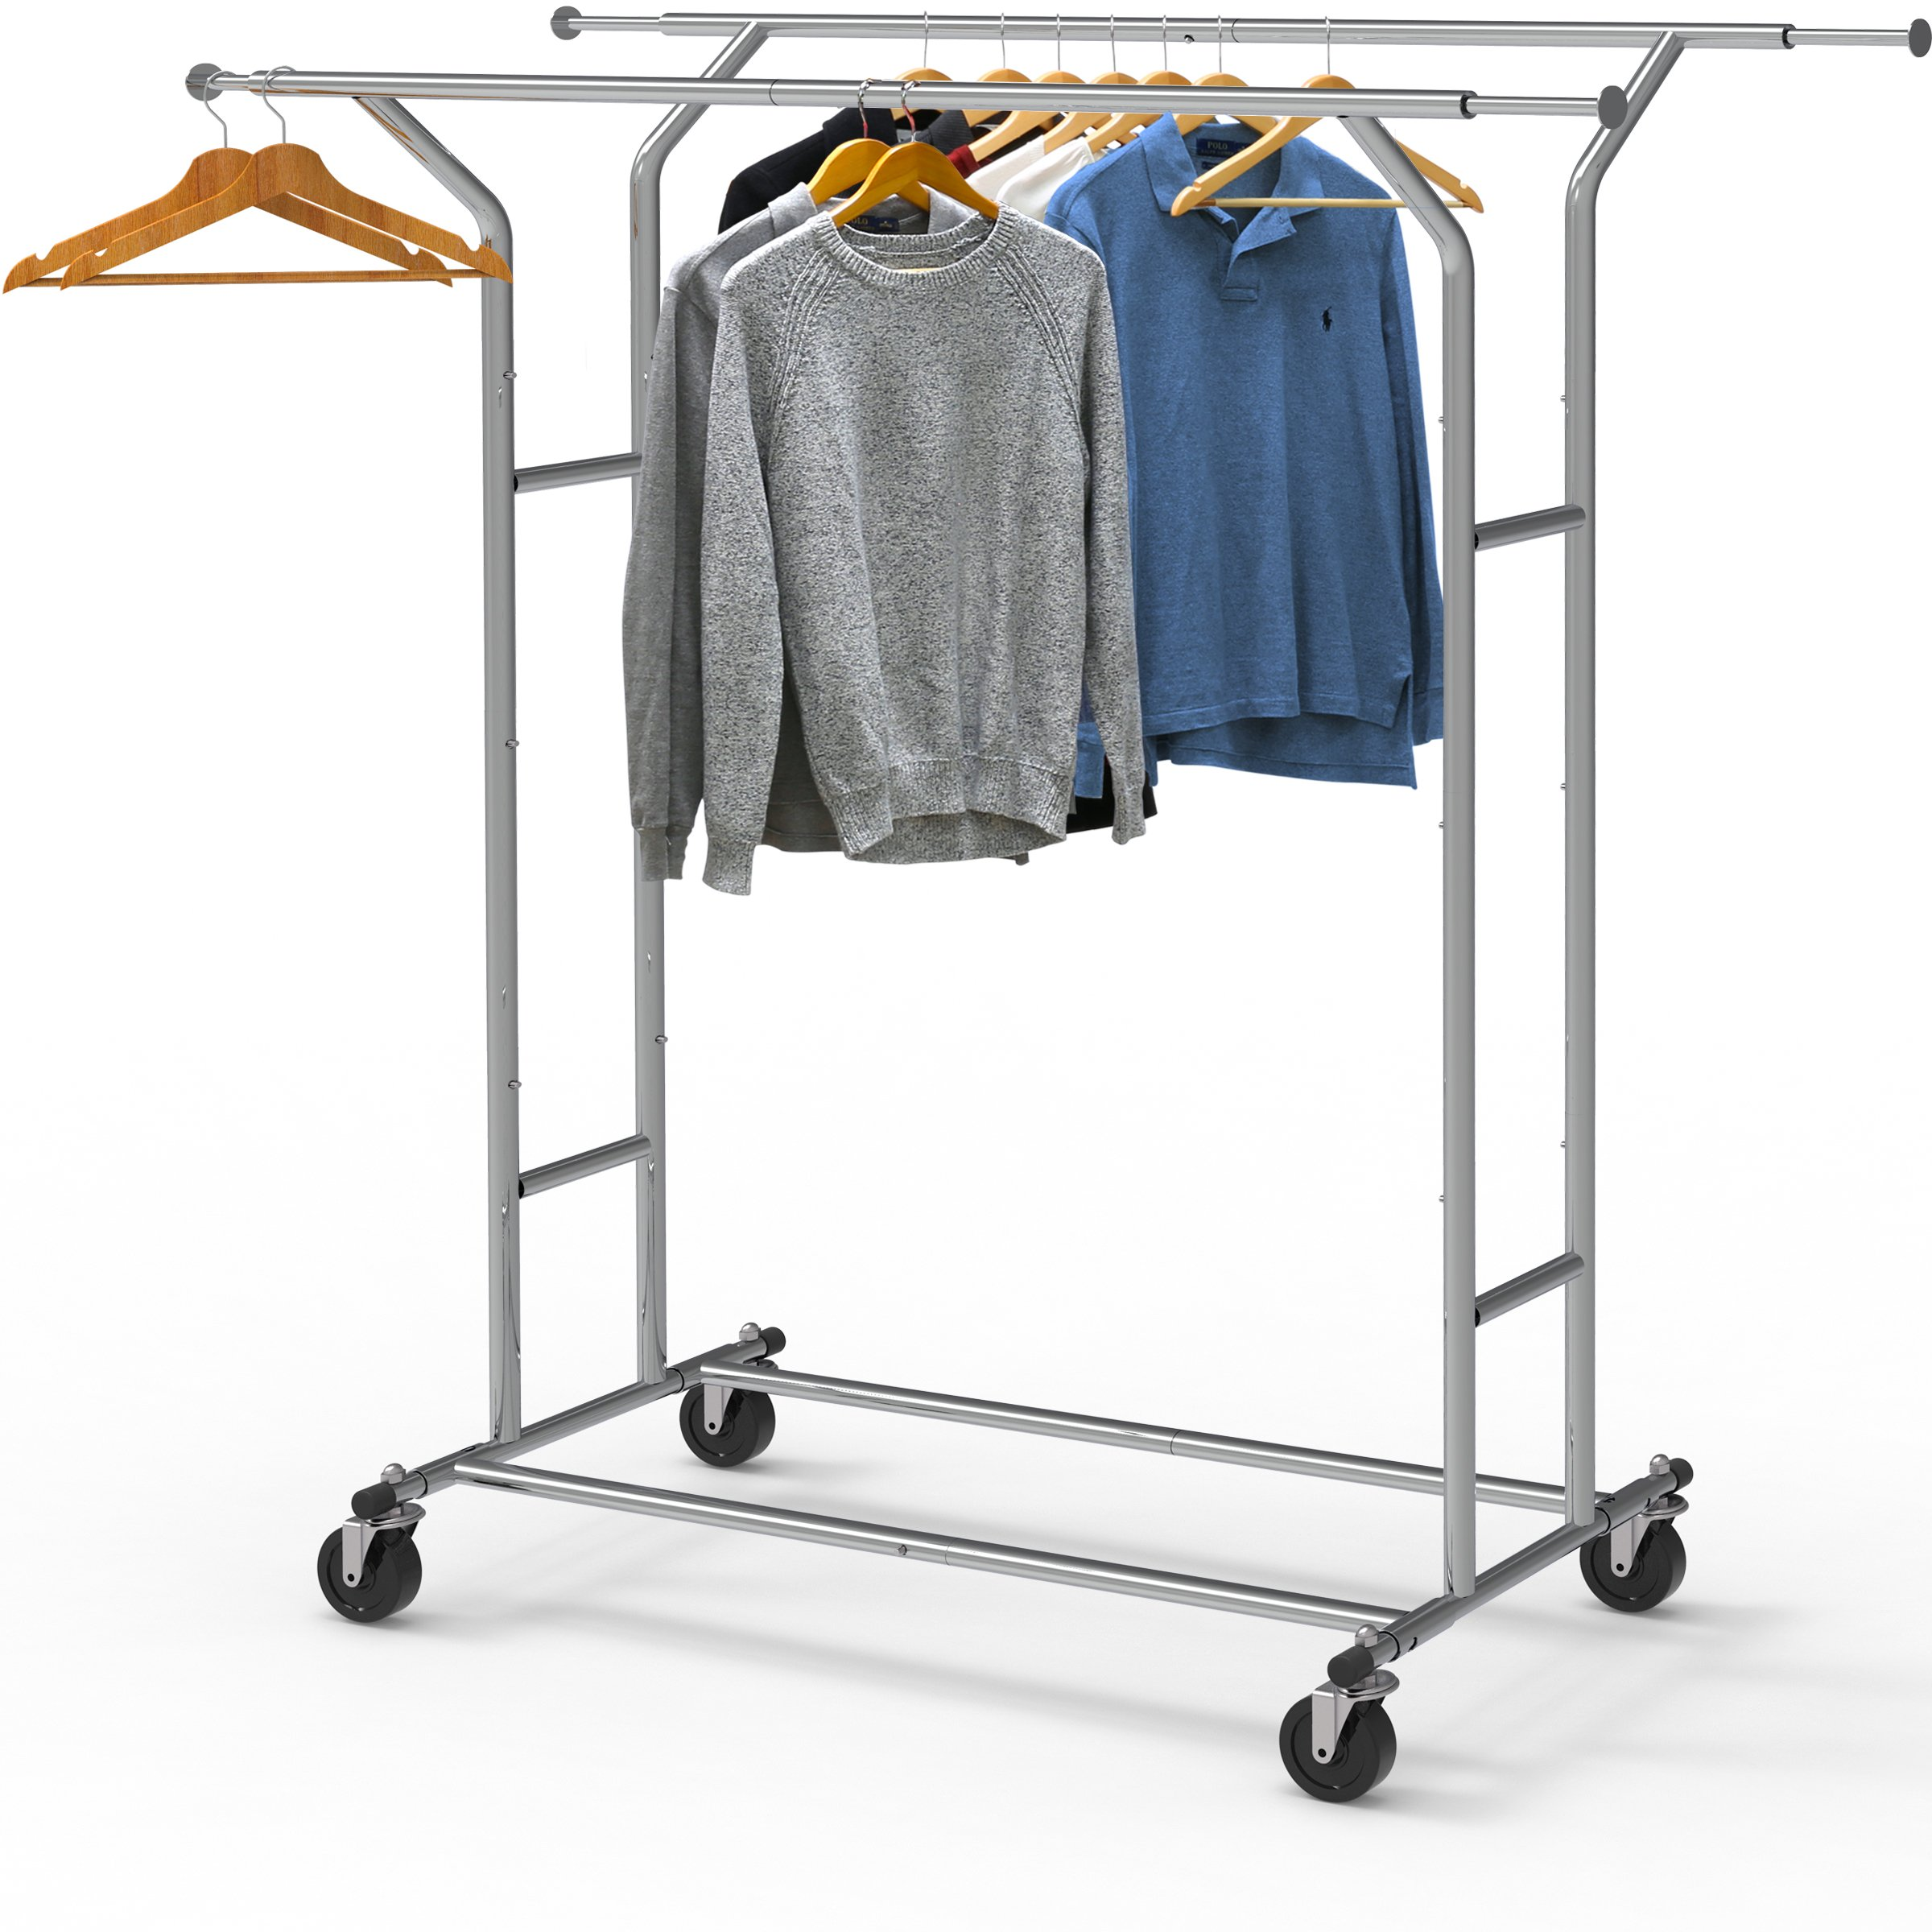 Simple Houseware Heavy Duty Double Rail Clothing Garment Rack, Chrome by Simple Houseware